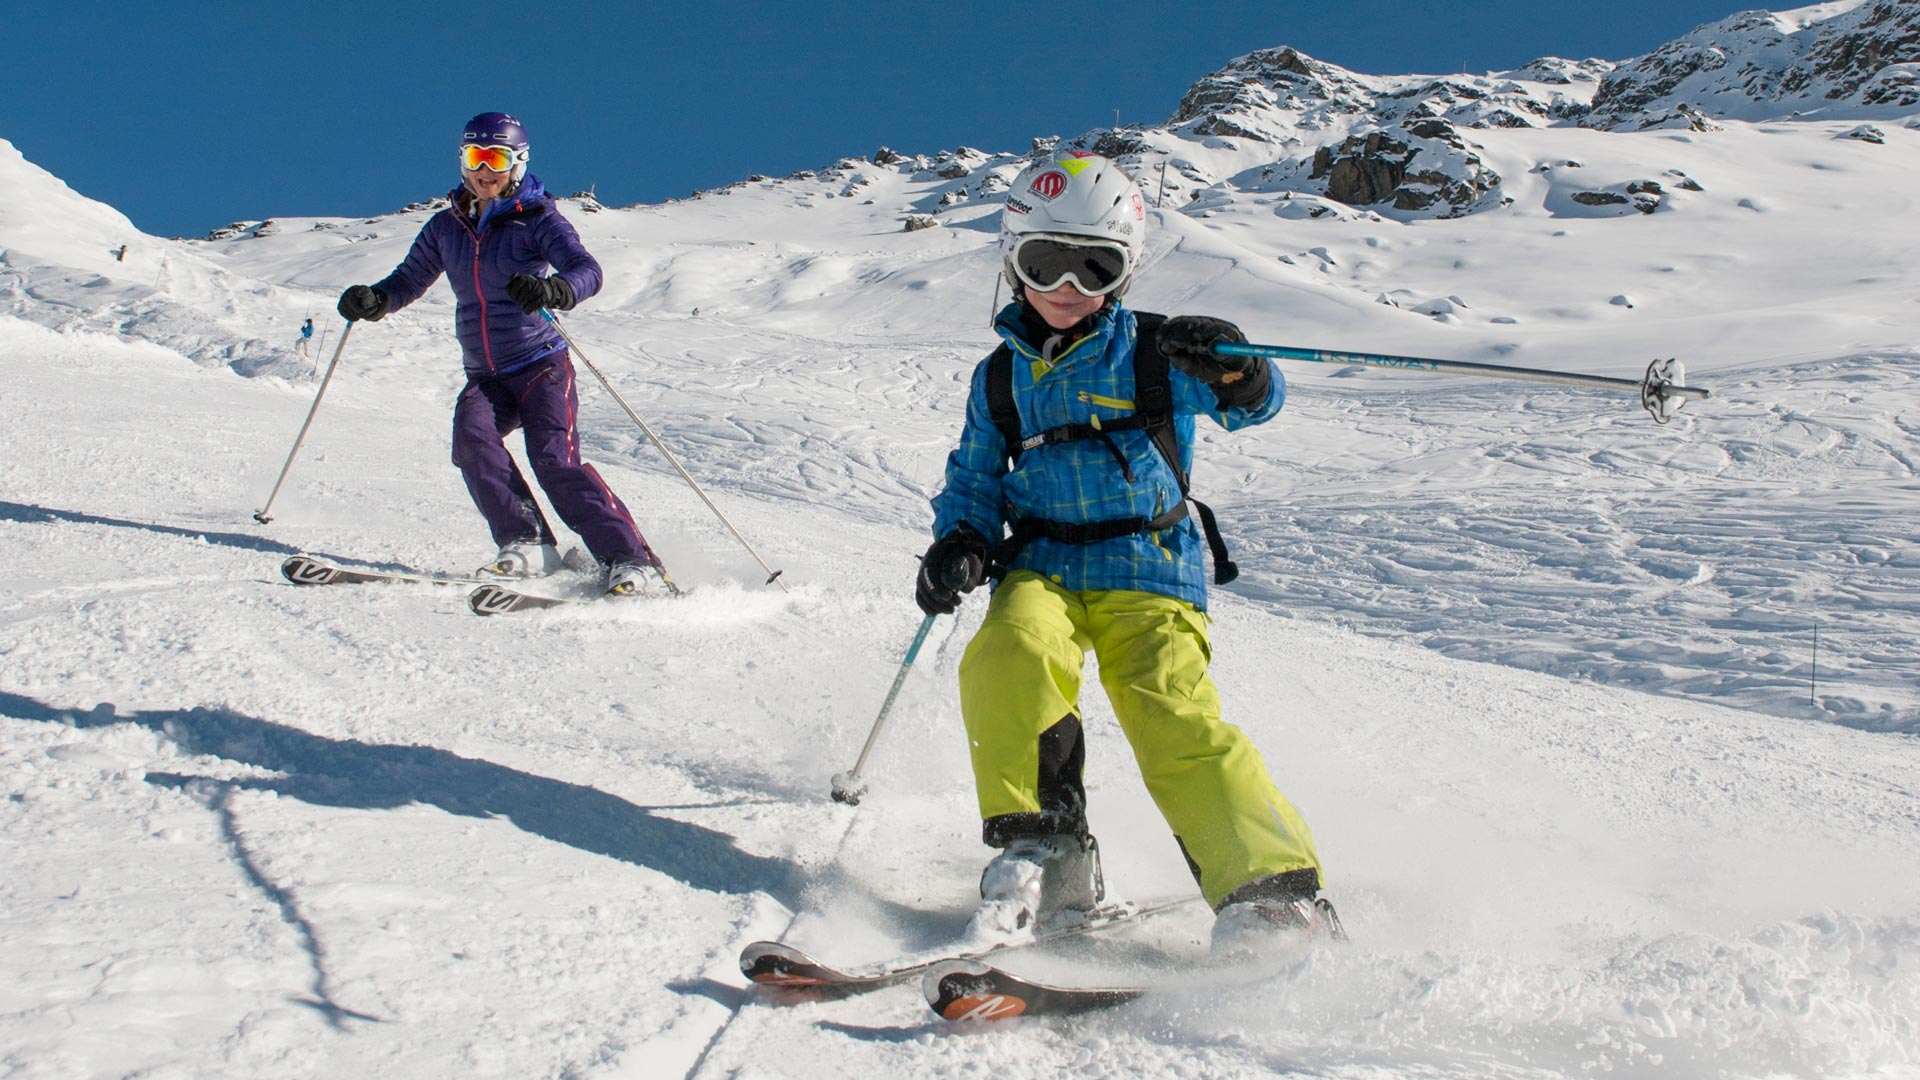 Family friendly resort in Sainte Foy